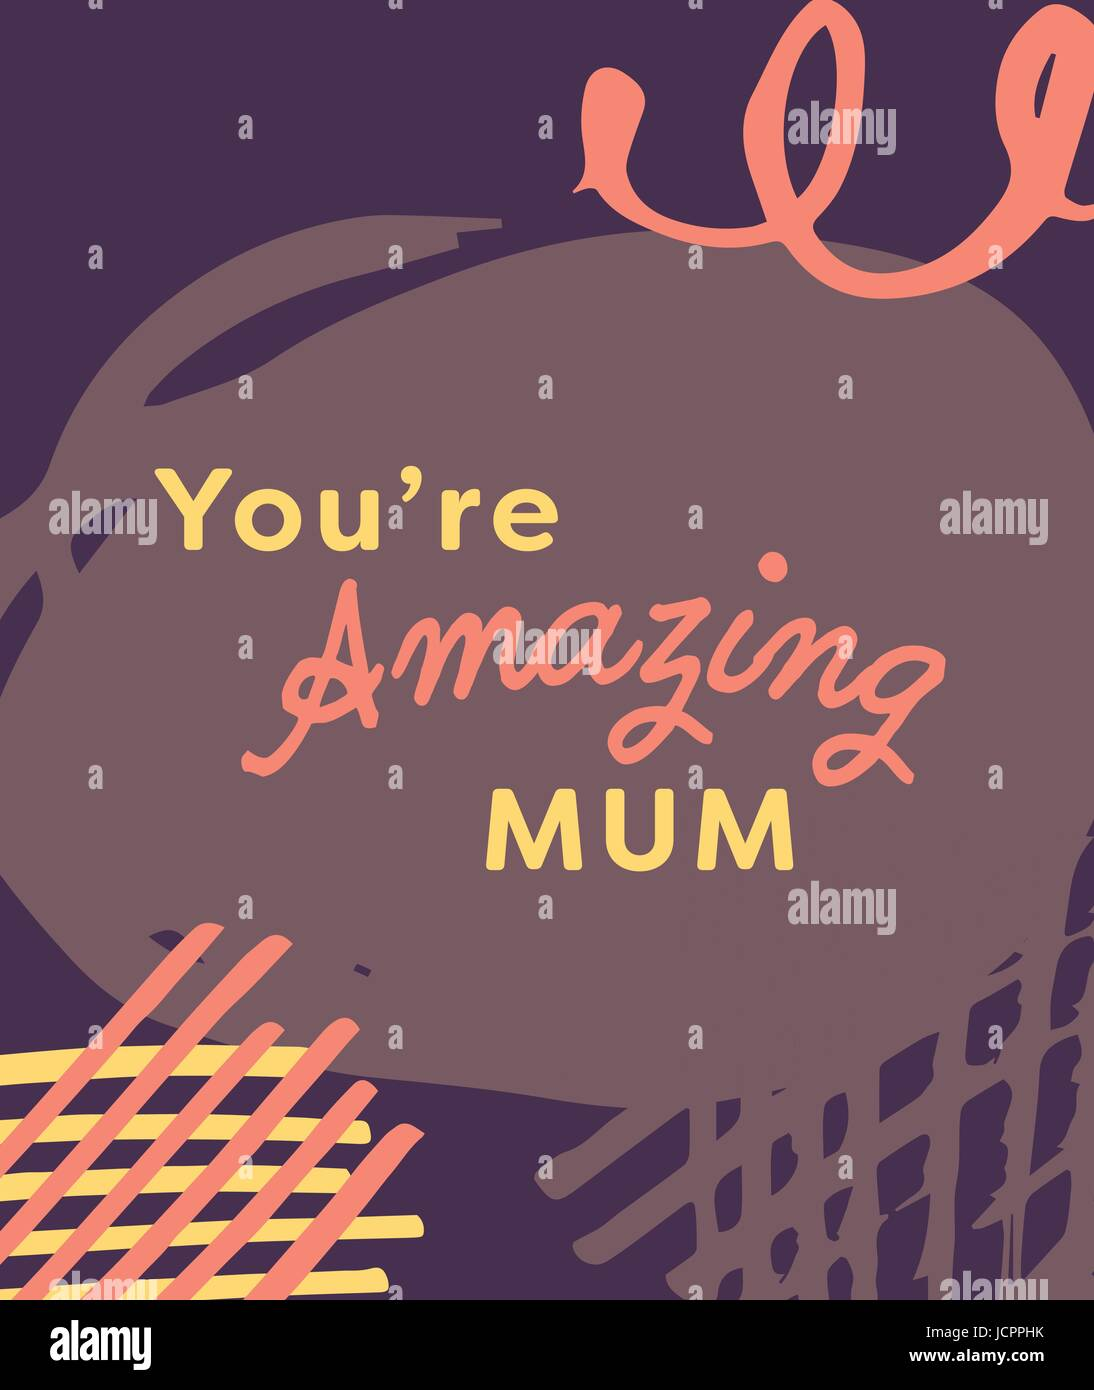 mothers day card with you are amazing mum message stock vector art